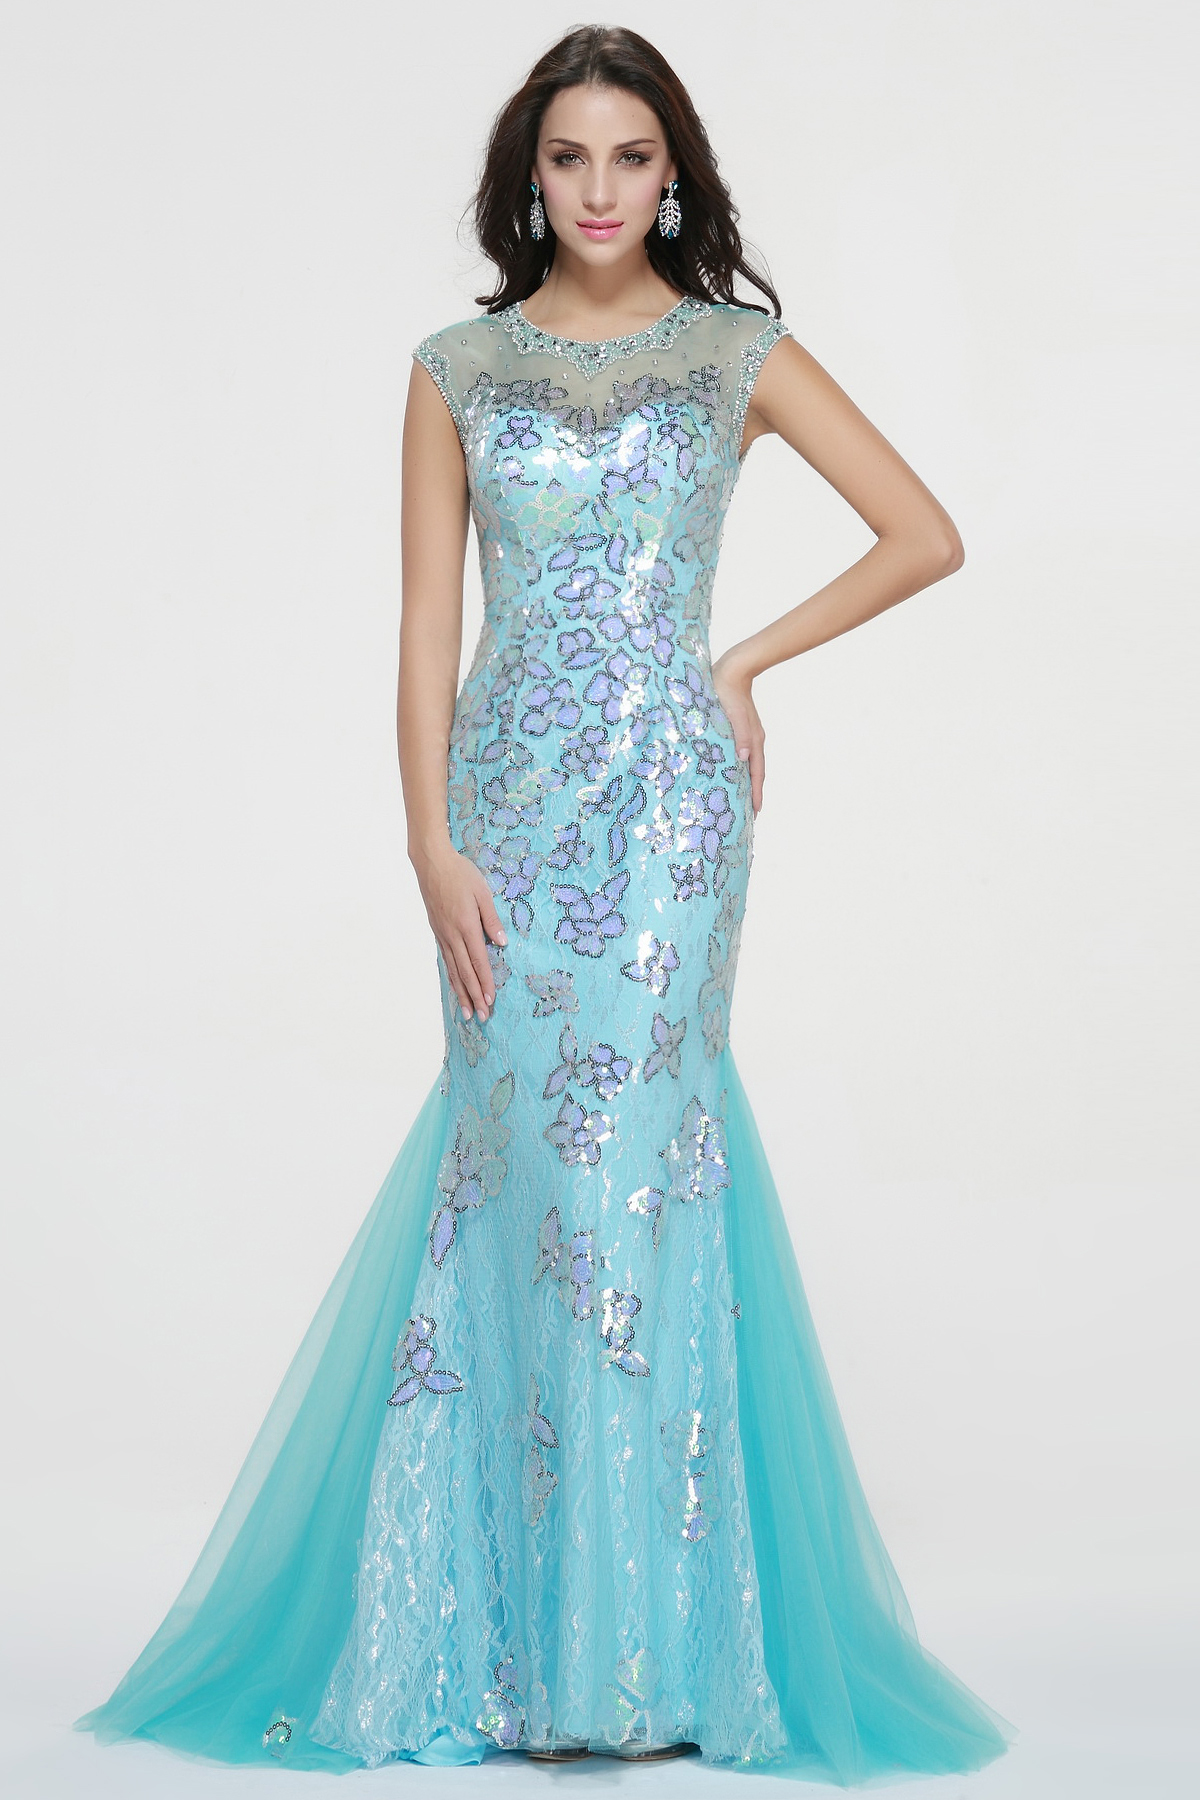 Illusion Neck Trumpet Long Flower Lace Blue Tulle Prom Dress